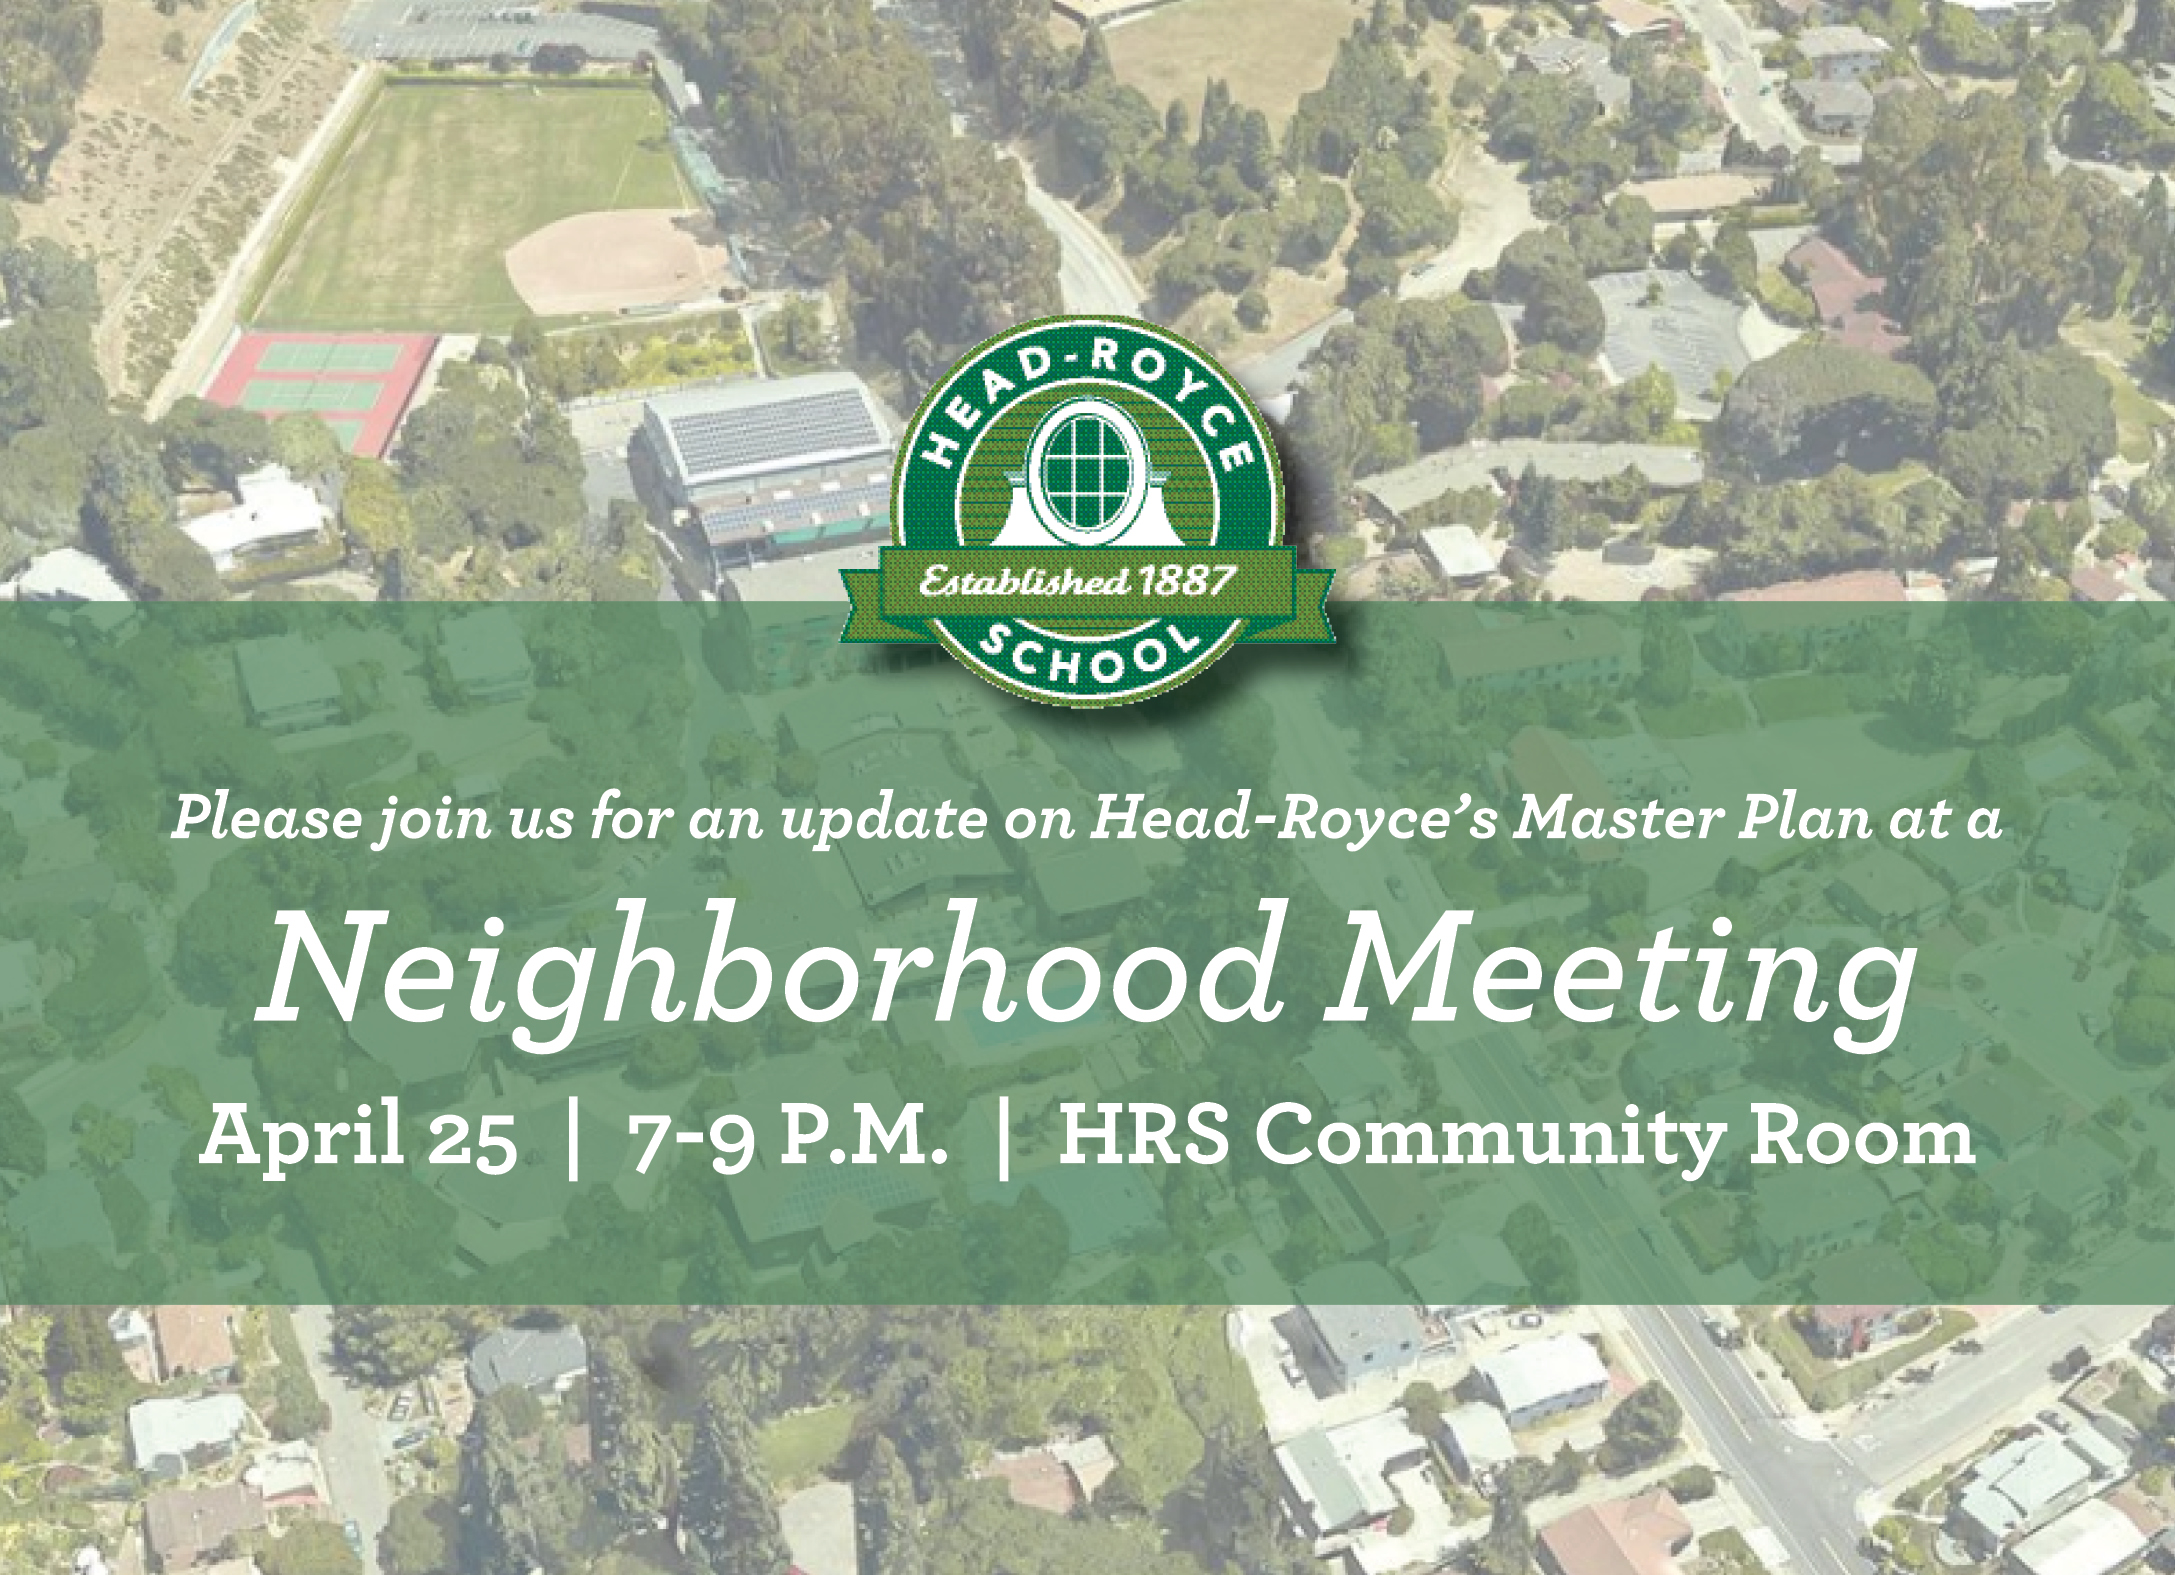 Neighborhood Meeting on April 25: Master Plan Update